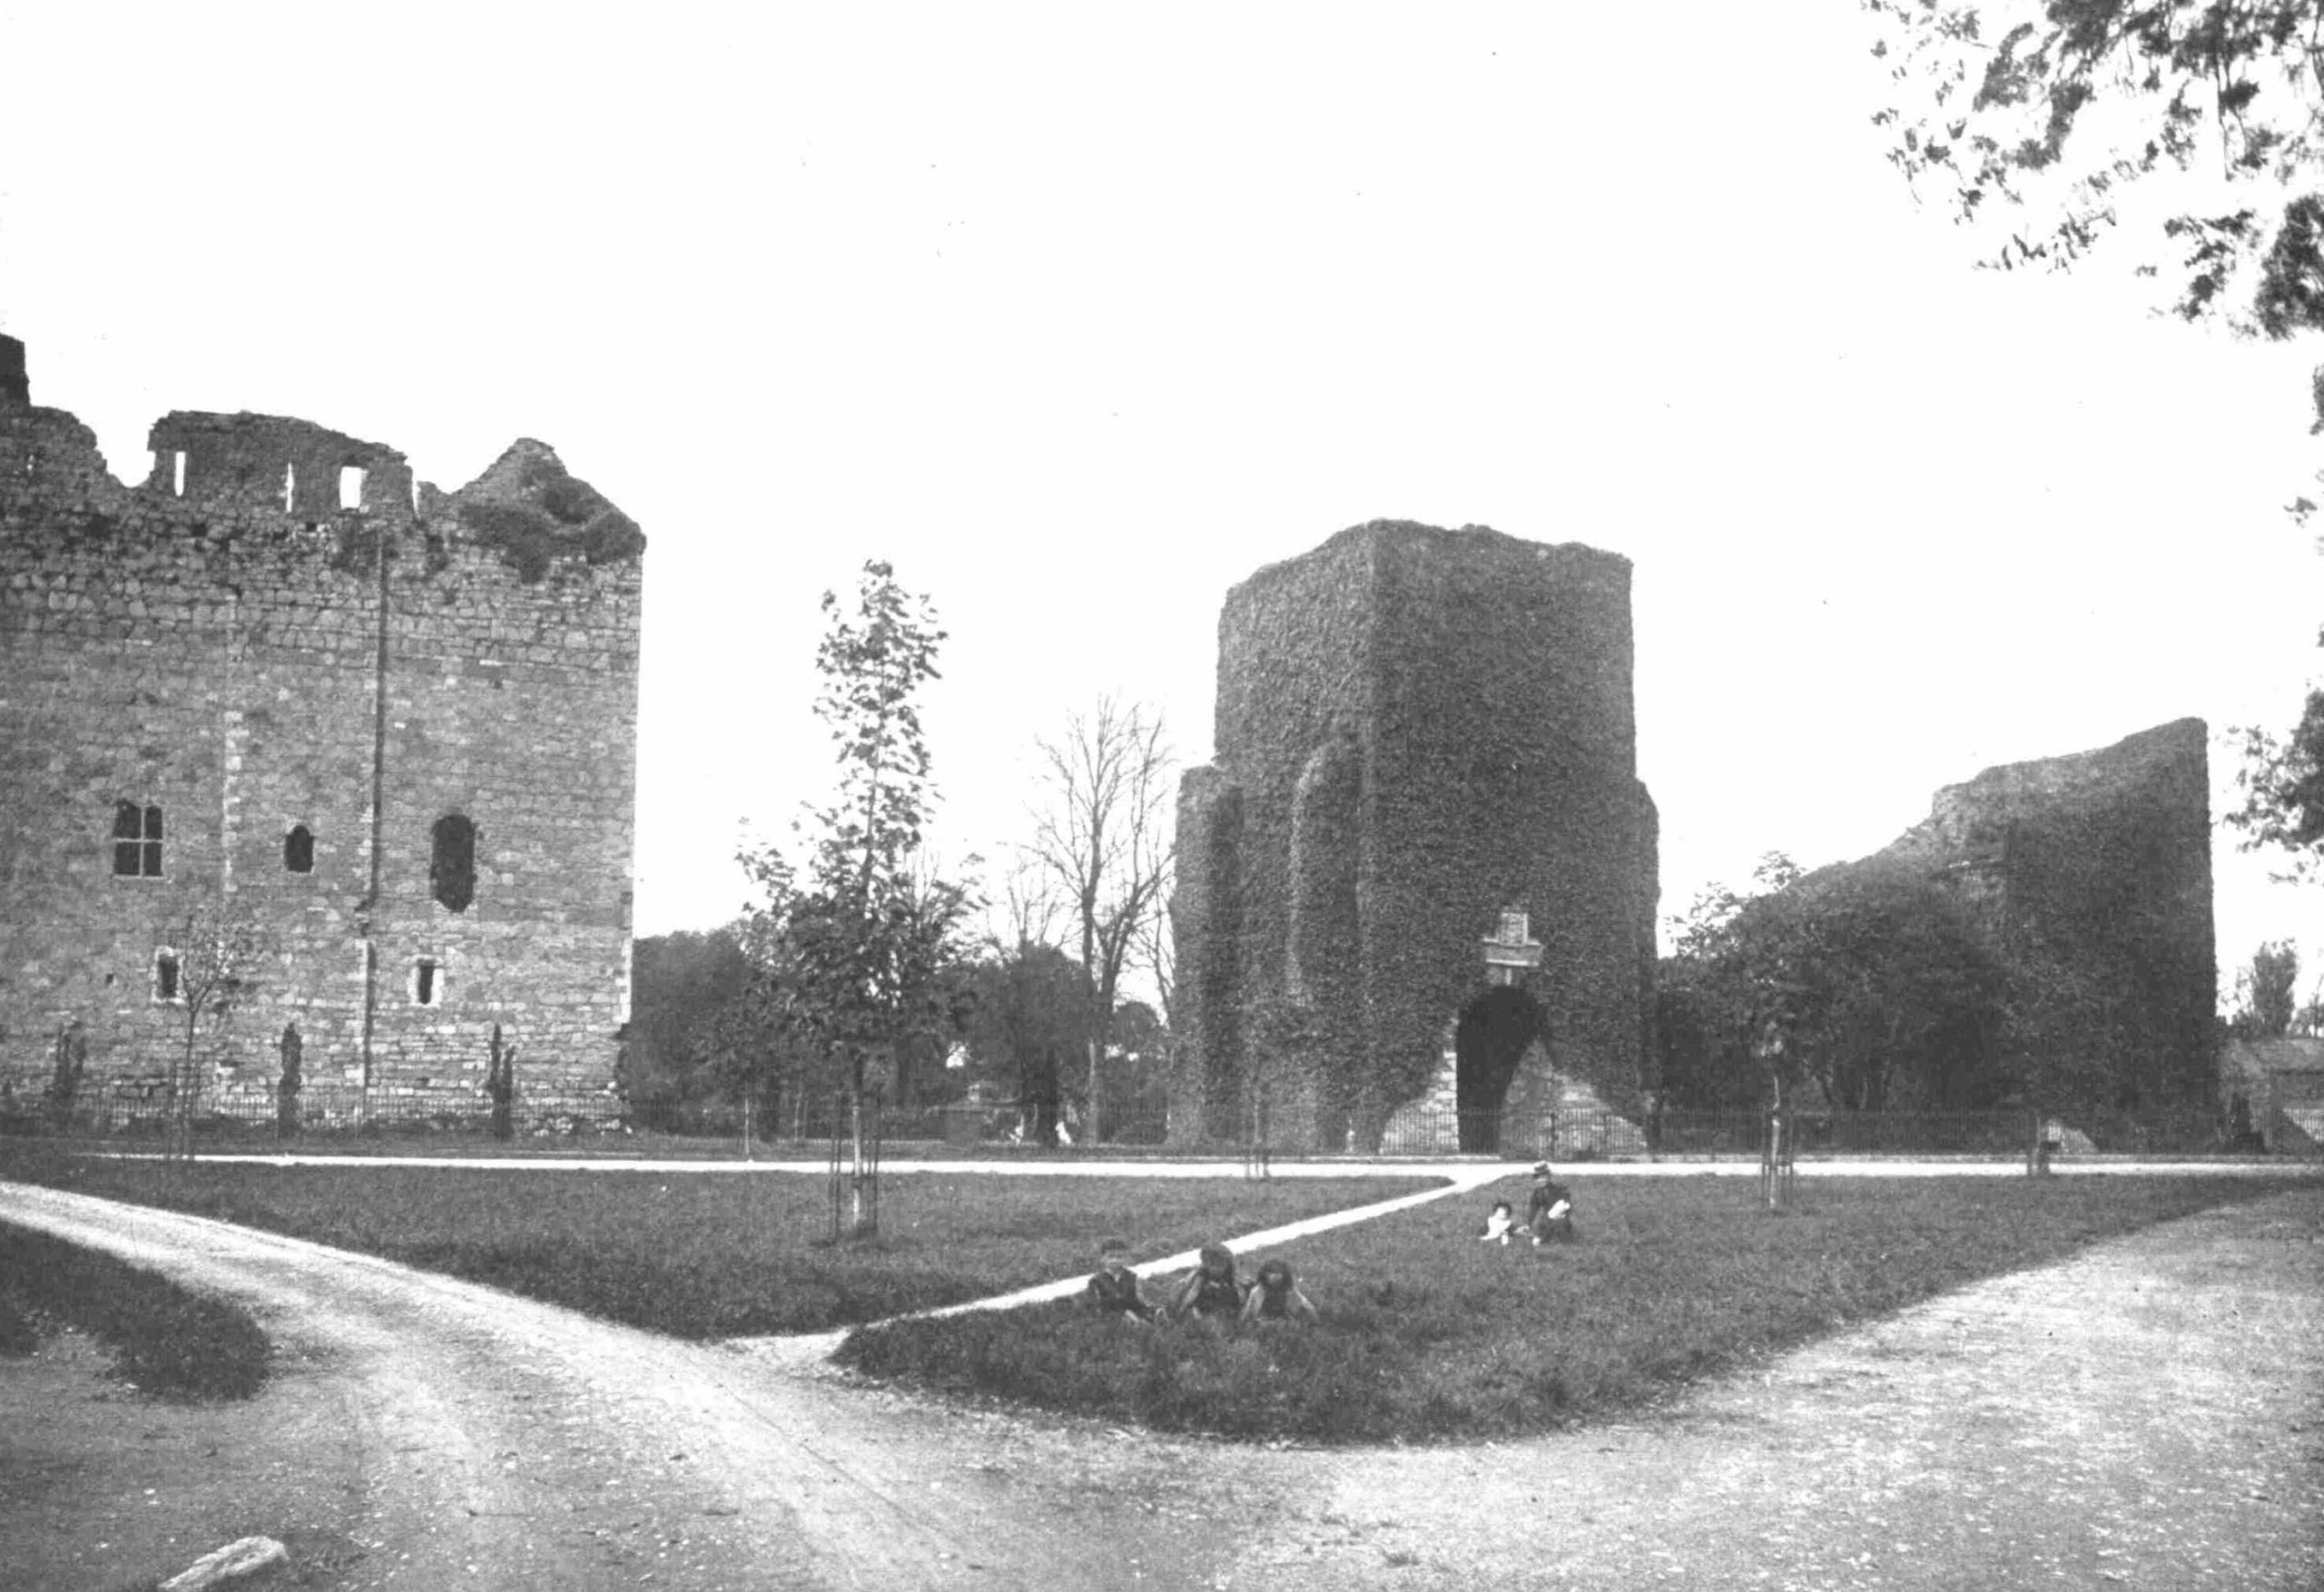 Maynooth Castle pictured in 1898